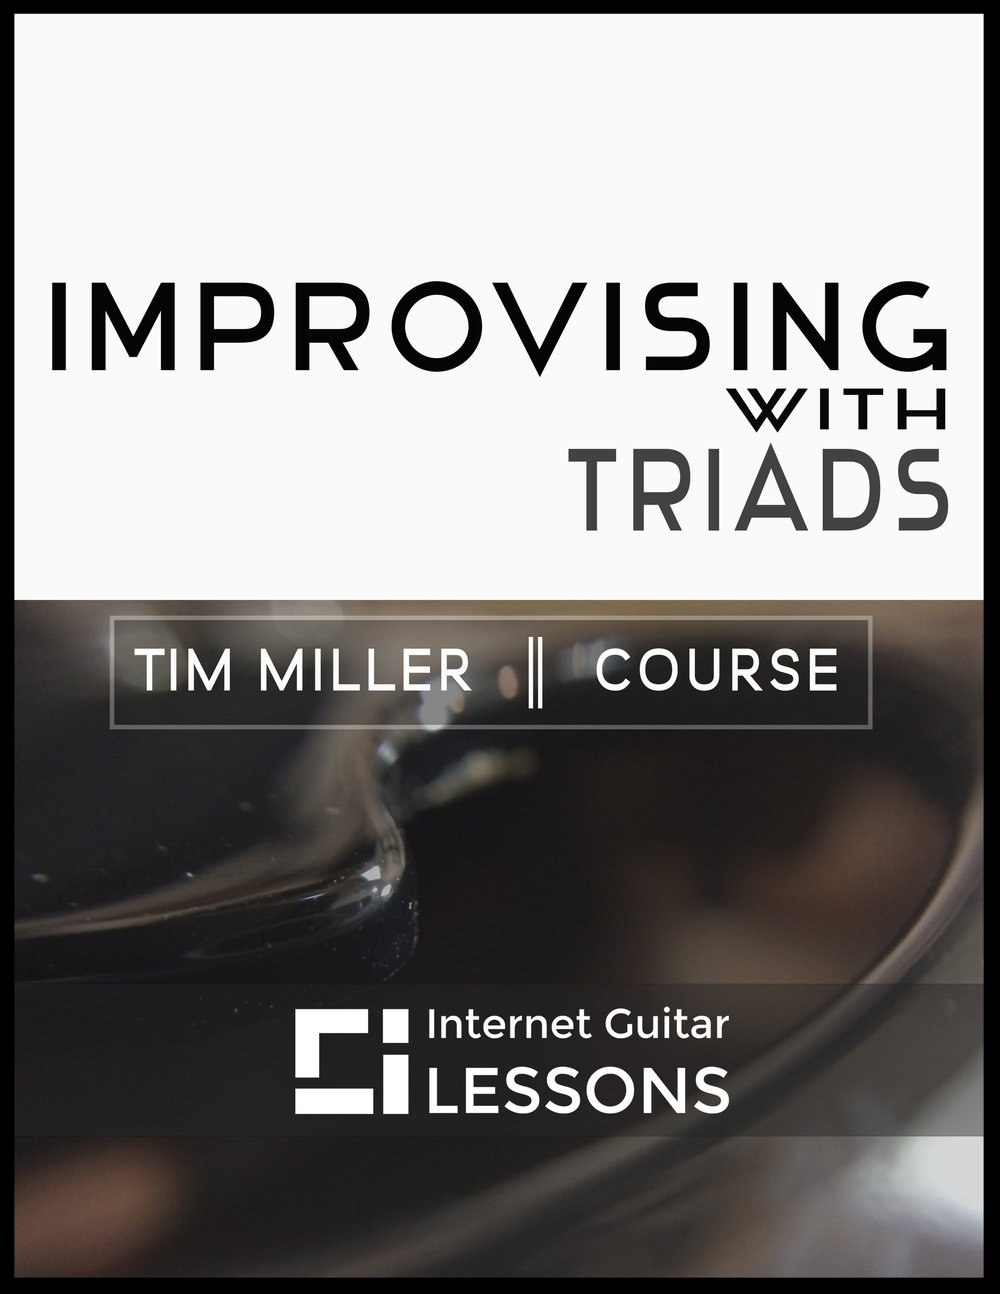 Improvising with Triads 1.17 flat.jpg